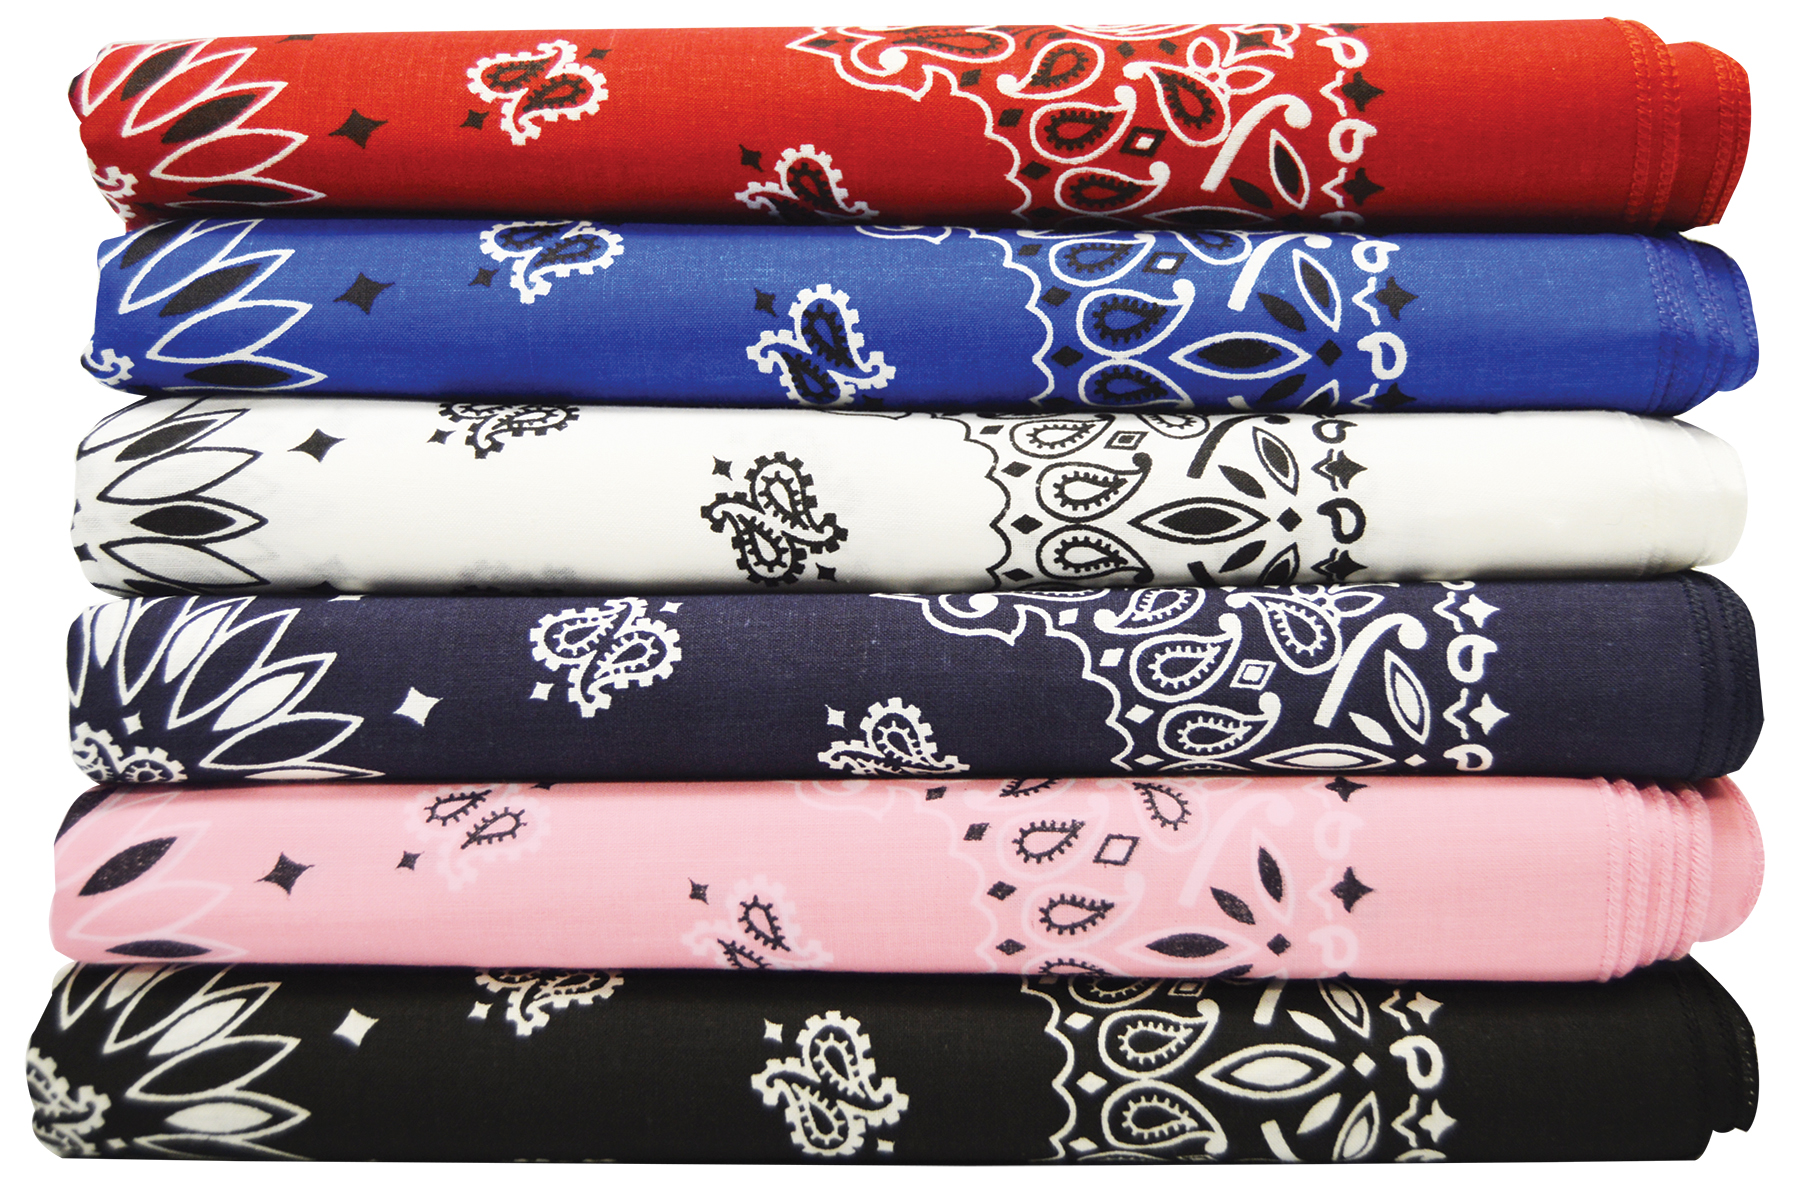 Assorted bandannas stacked on top of each other